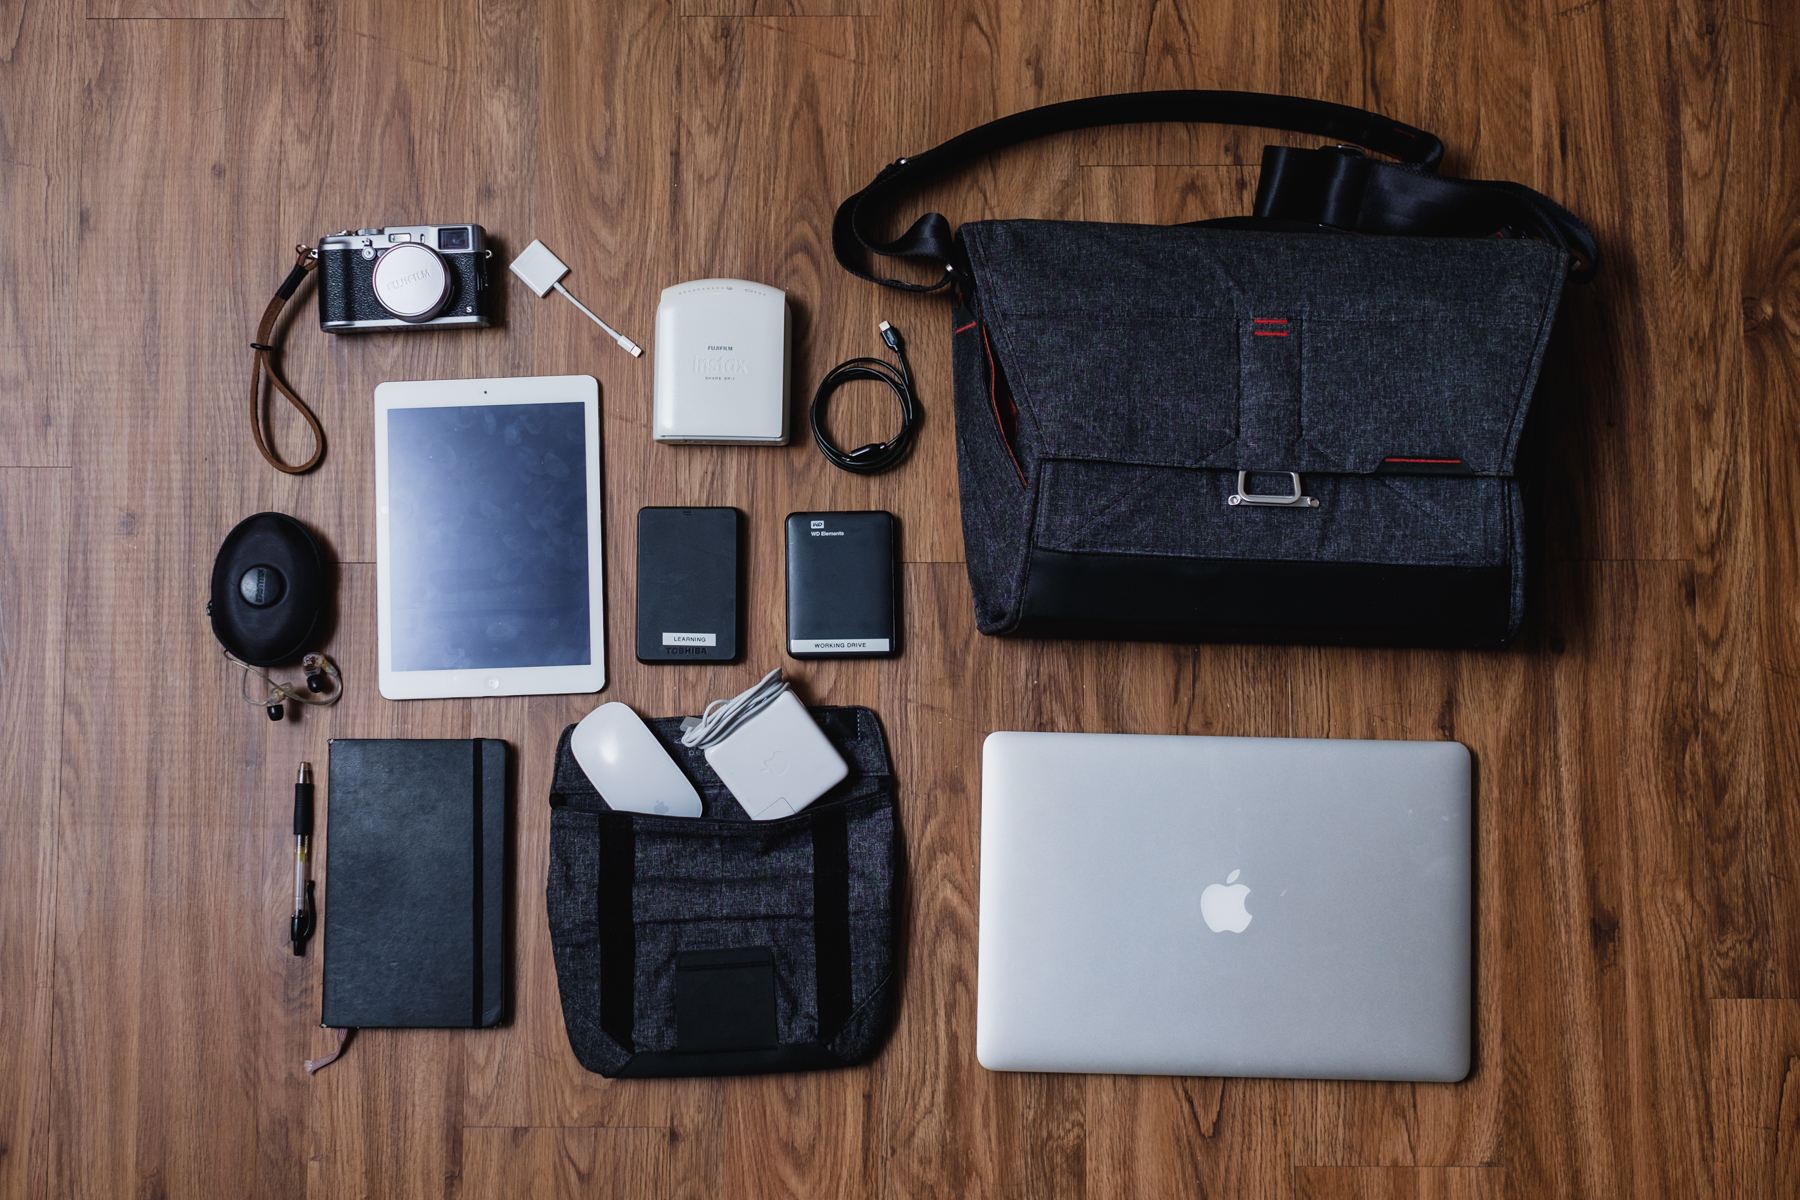 This is my other everyday setup (heavy version) 'Gotta get creative bag' -    Fujifilm X100s  camera, Apple iPad Air, Apple Lighting to SD Card Adapter,   Shure E535 Earphones,   Moleskine notebook with Pilot G-2 Pen,   Fujifilm Instax Printer SP-1,   Apple Magic Mouse, Apple MagSafe Charger, and  Apple Macbook Pro 15 ""